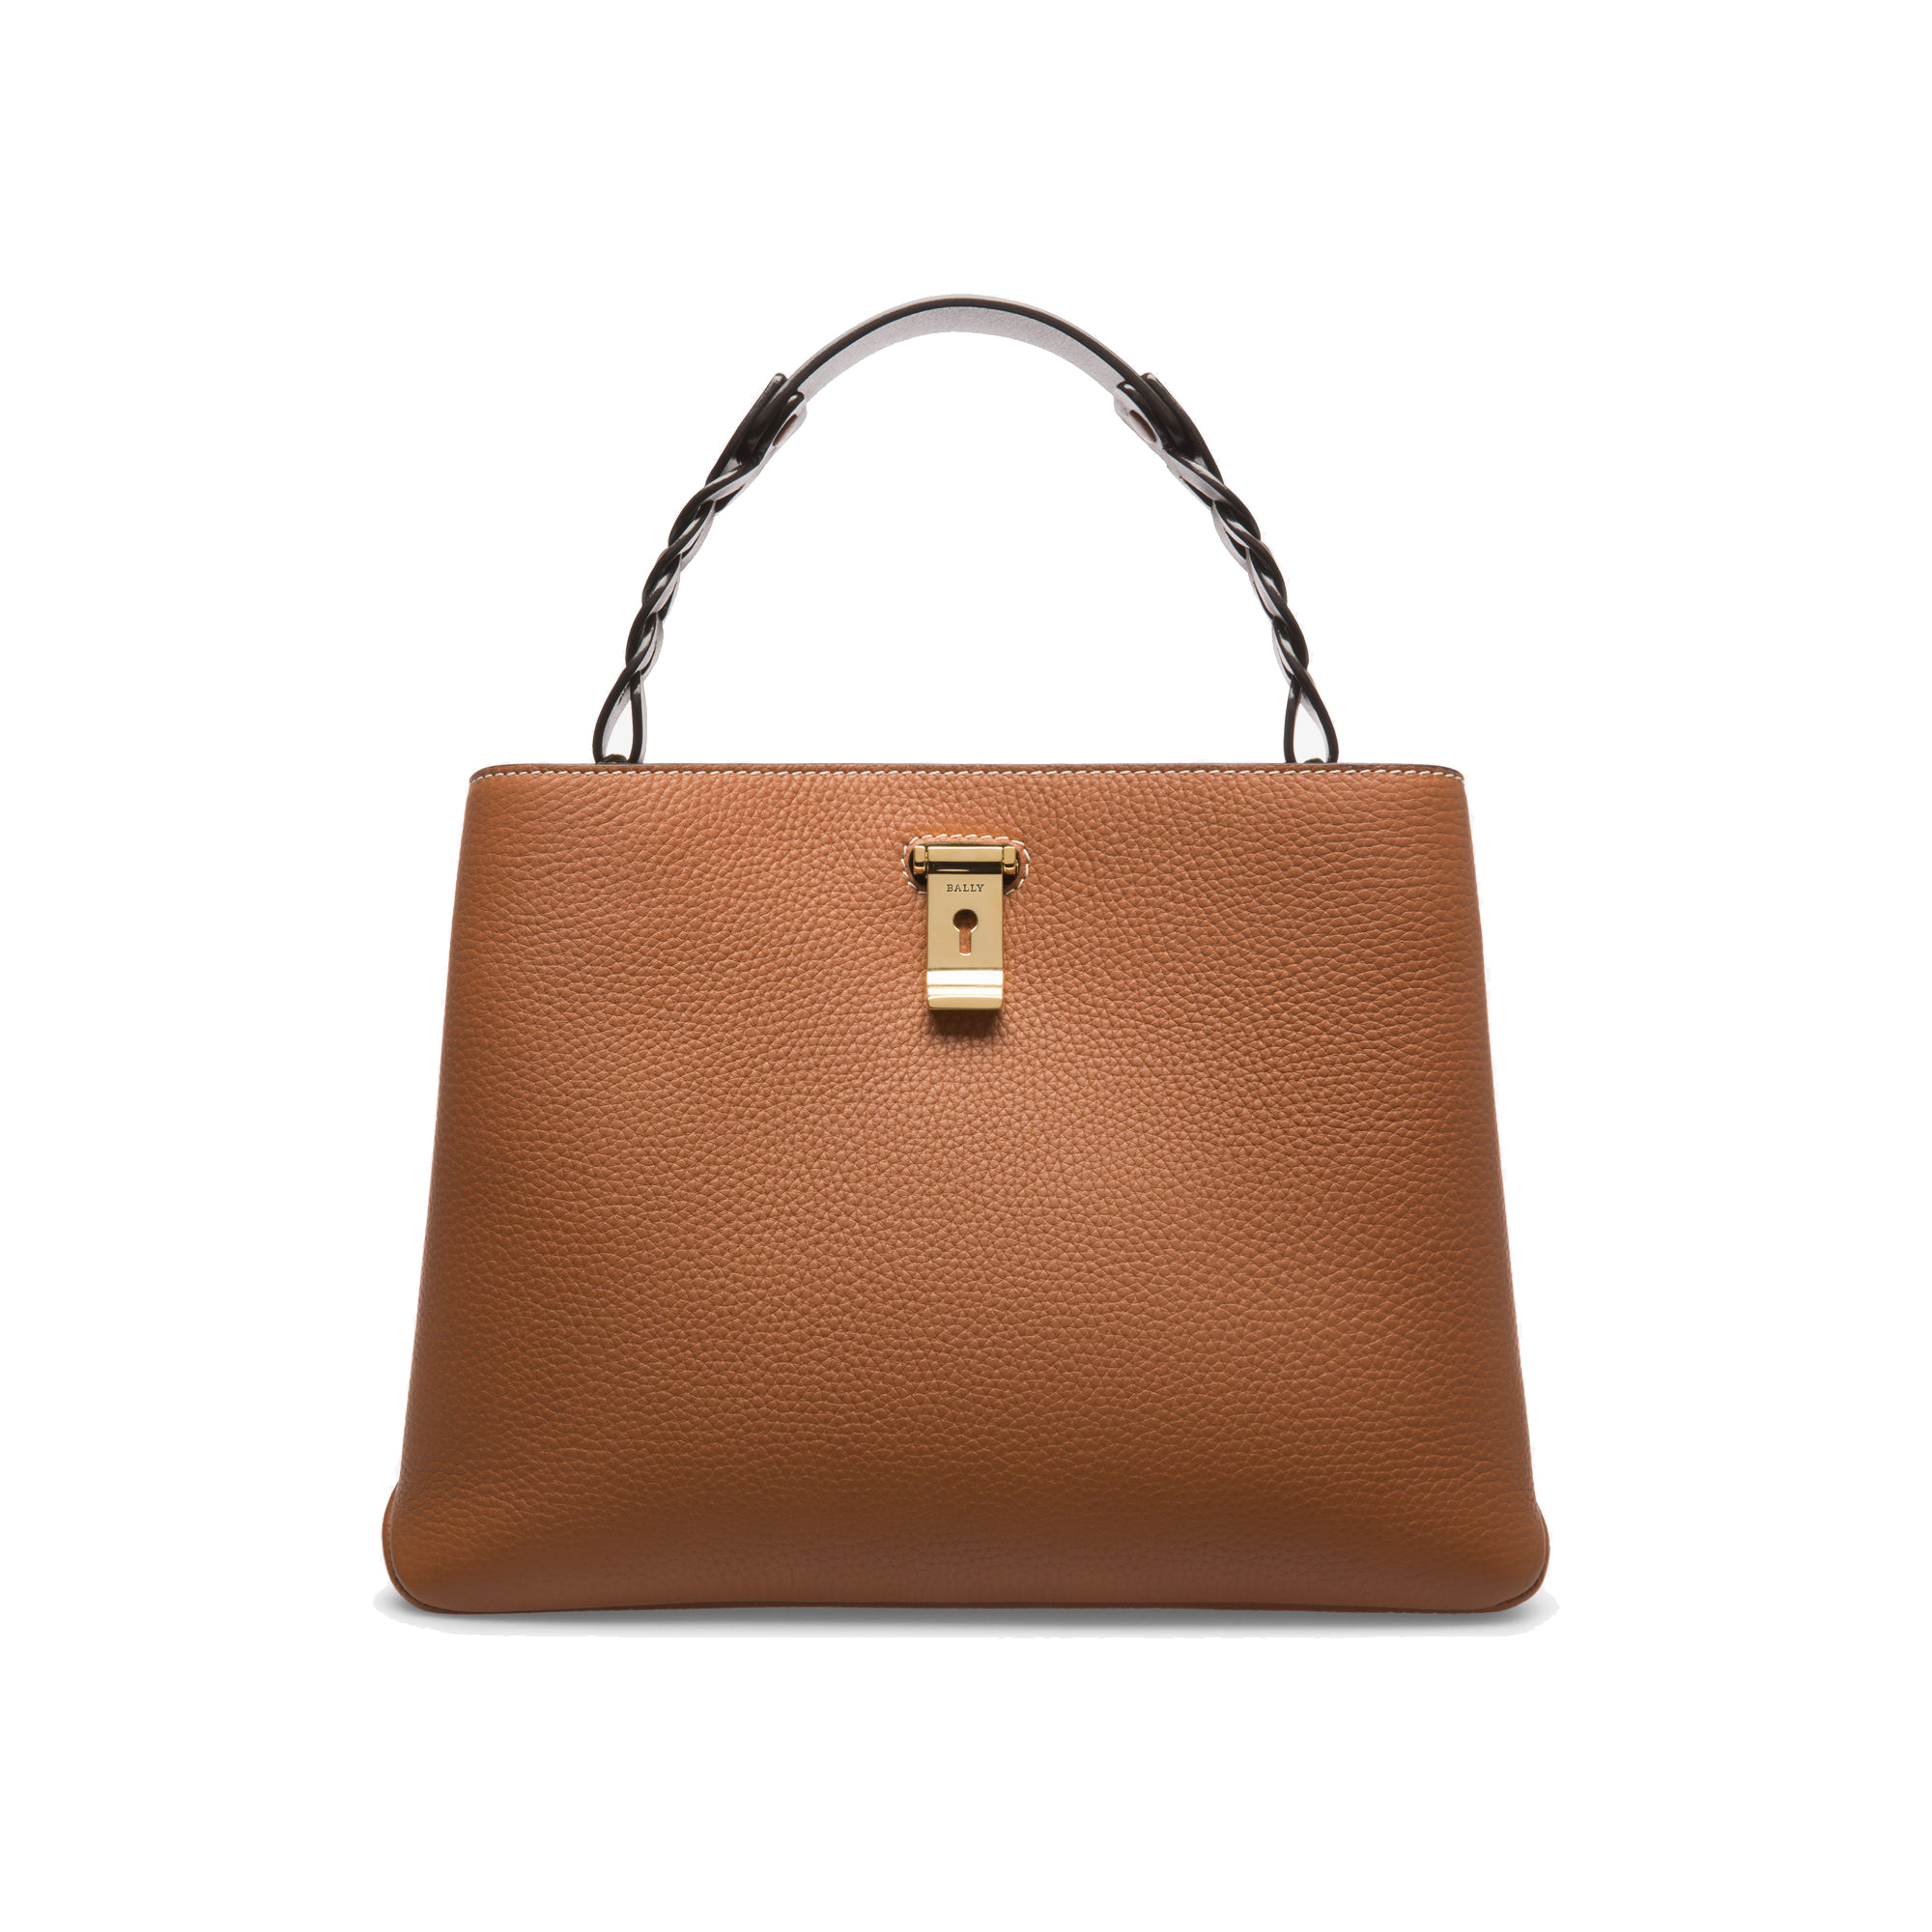 Bally Lucyle Leather Shoulder Bag